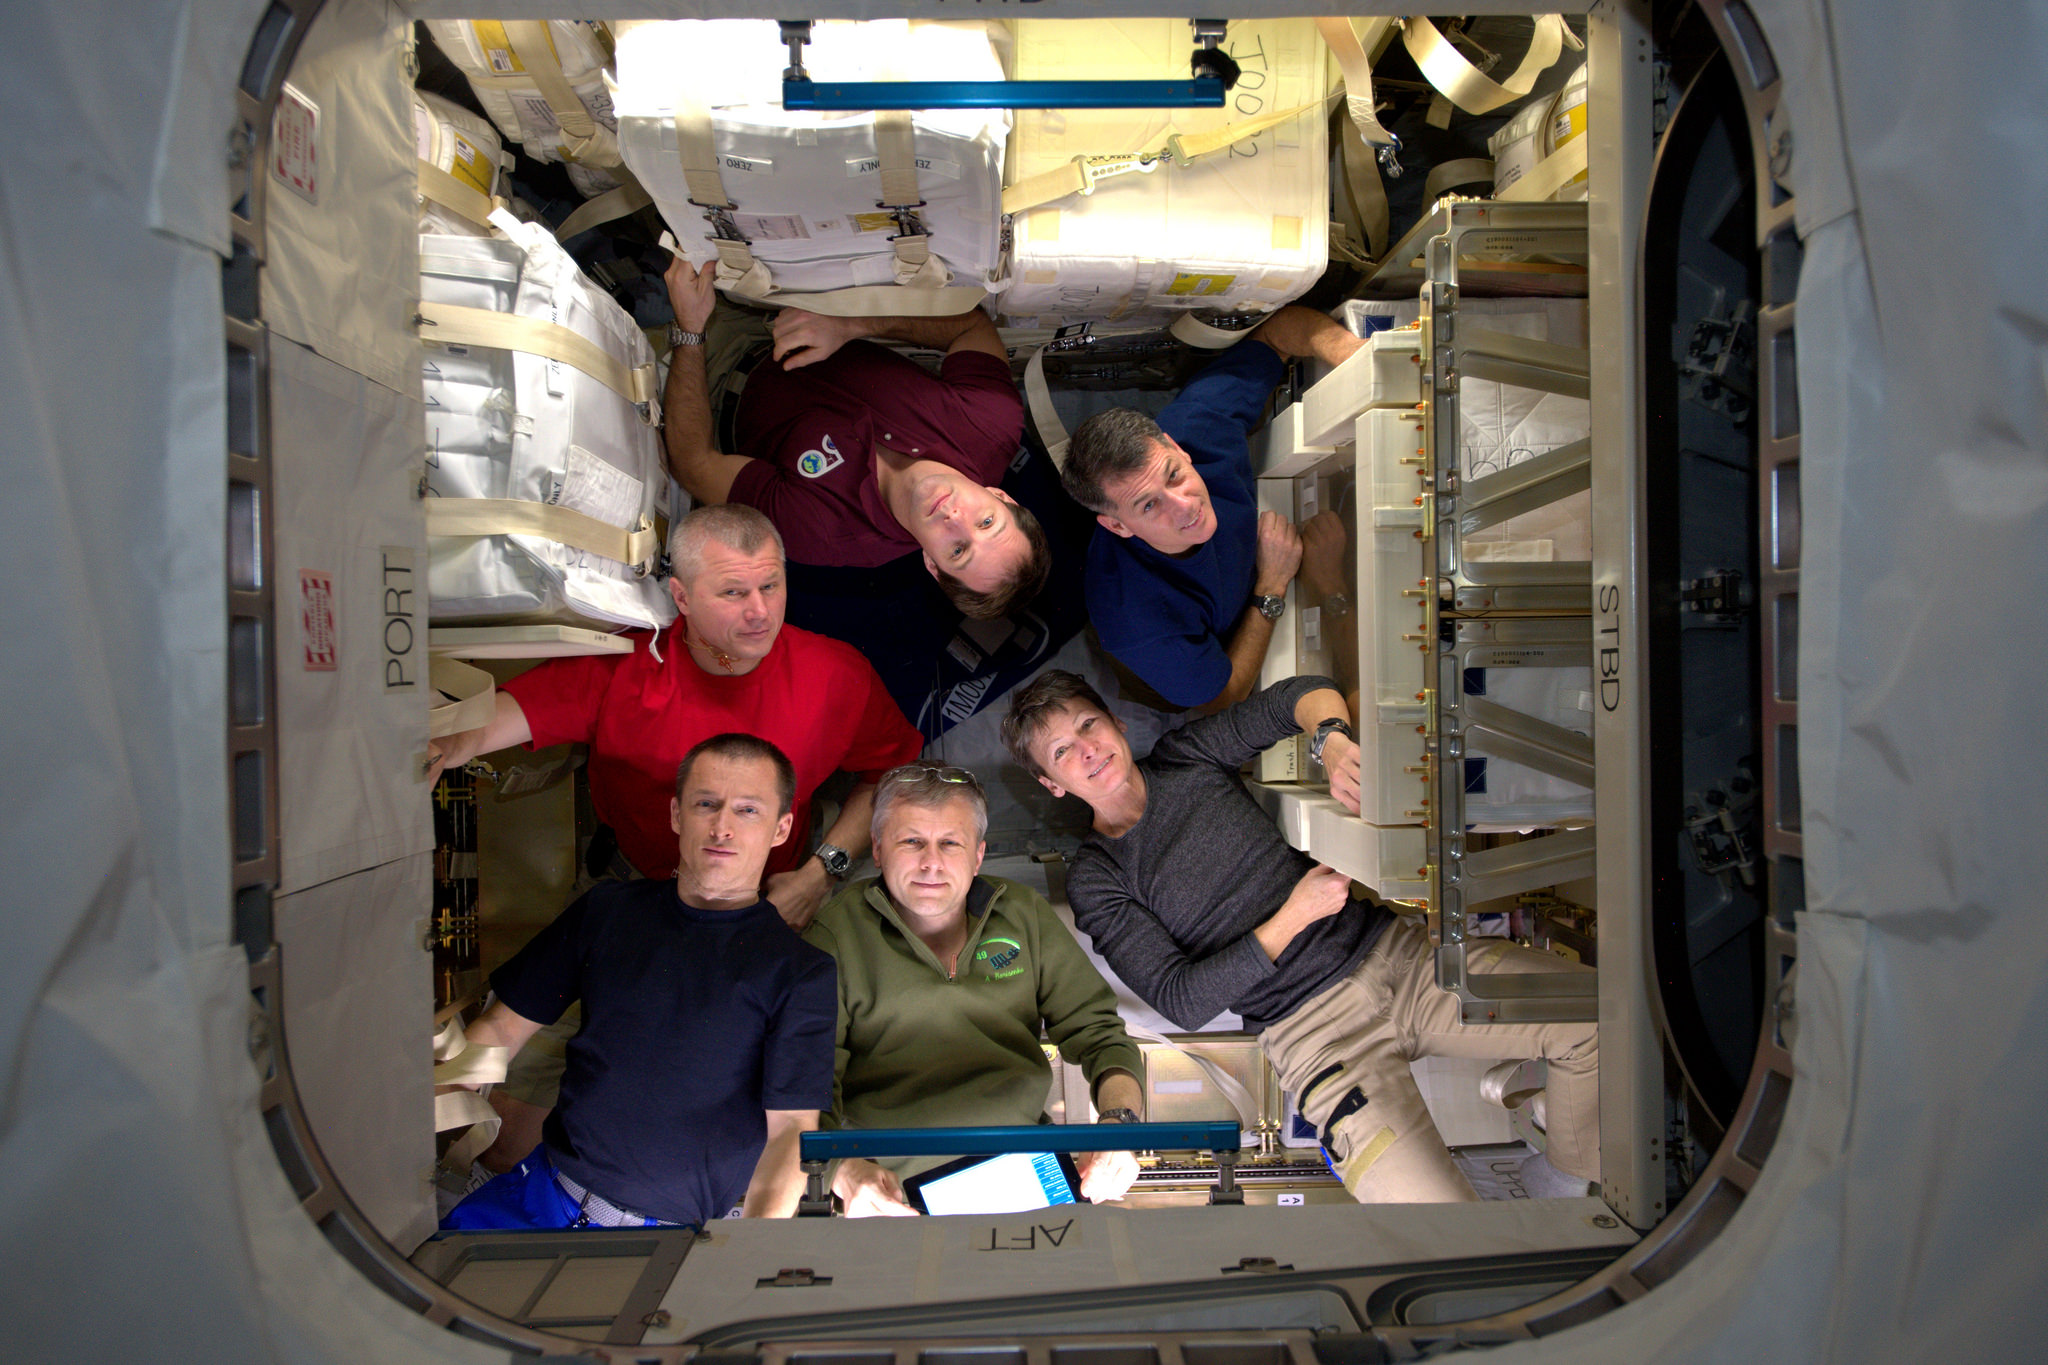 Space Station Photos: Expedition 50 Astronauts in Action